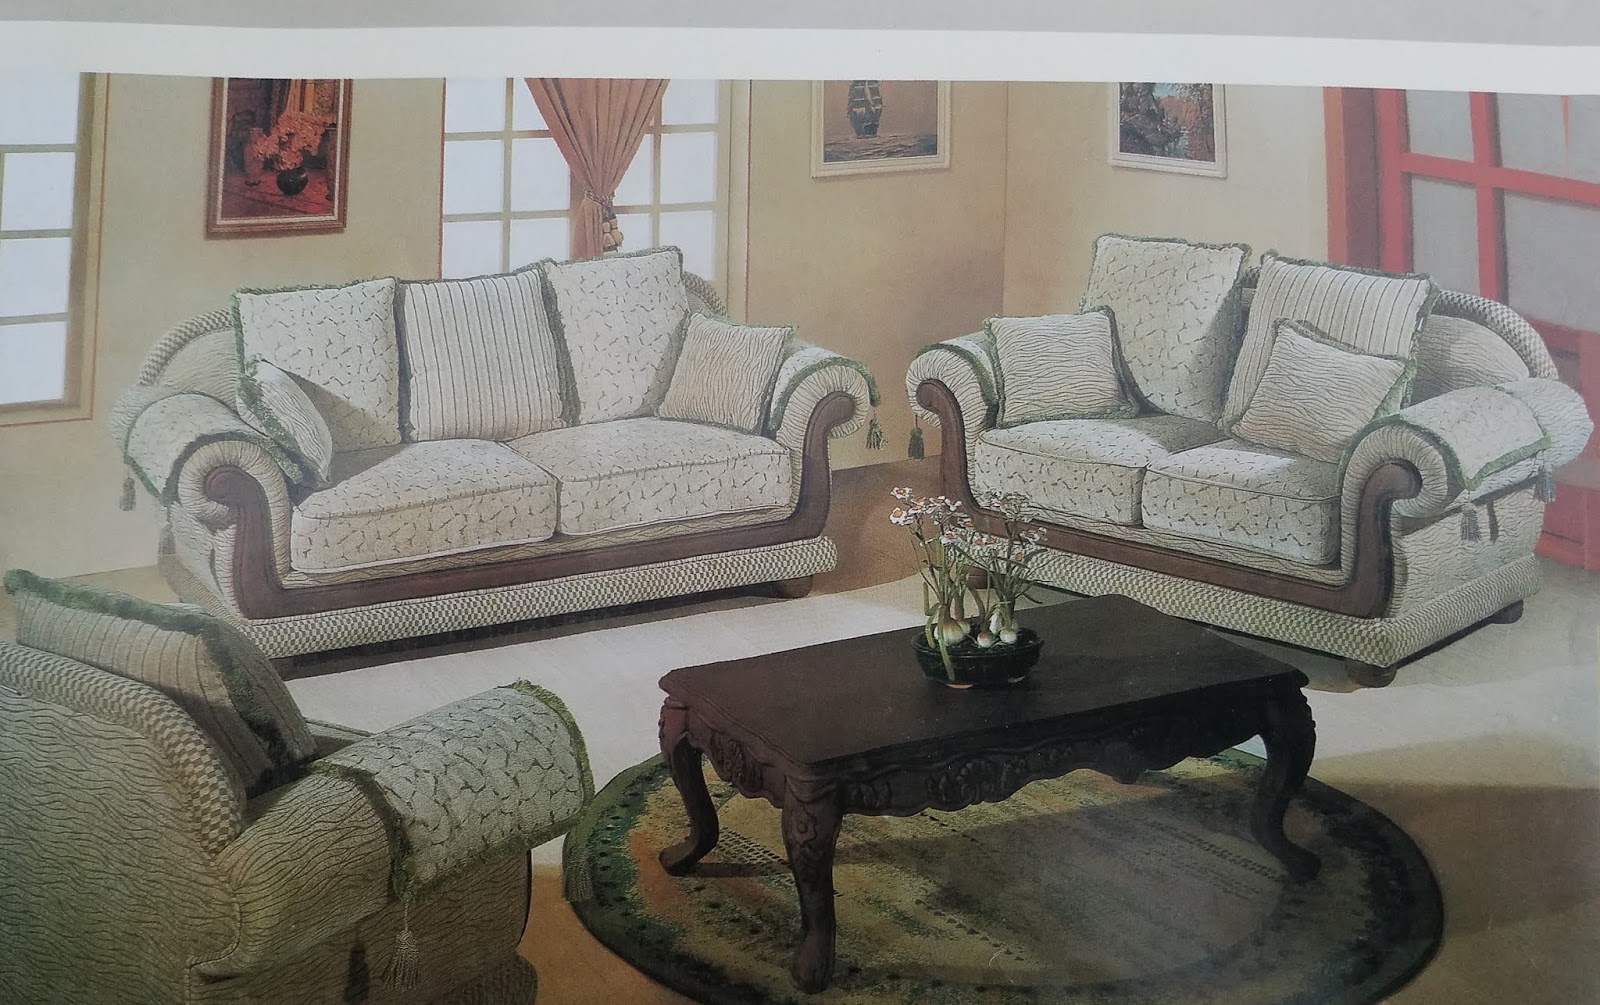 Find inspiring designs for home and office. Wooden Sofa Set With Price List in Pakistan 2019 ...